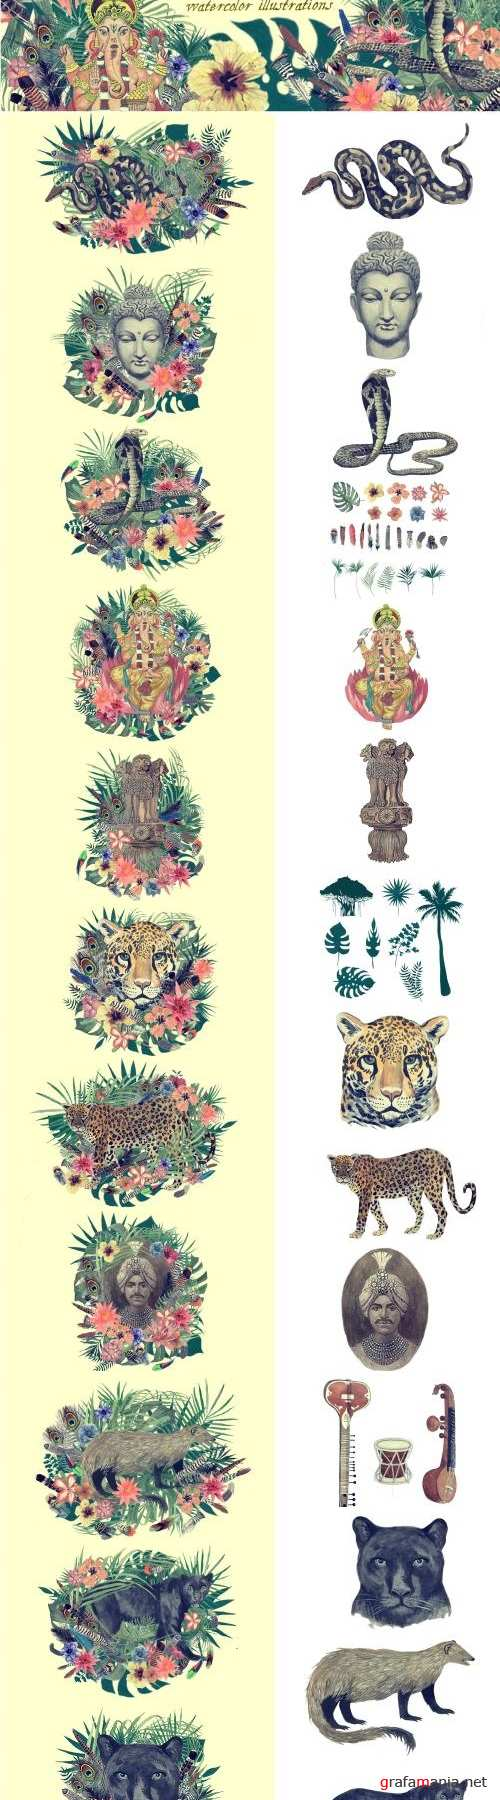 Vintage India 2. Illustrations Set - 2481616